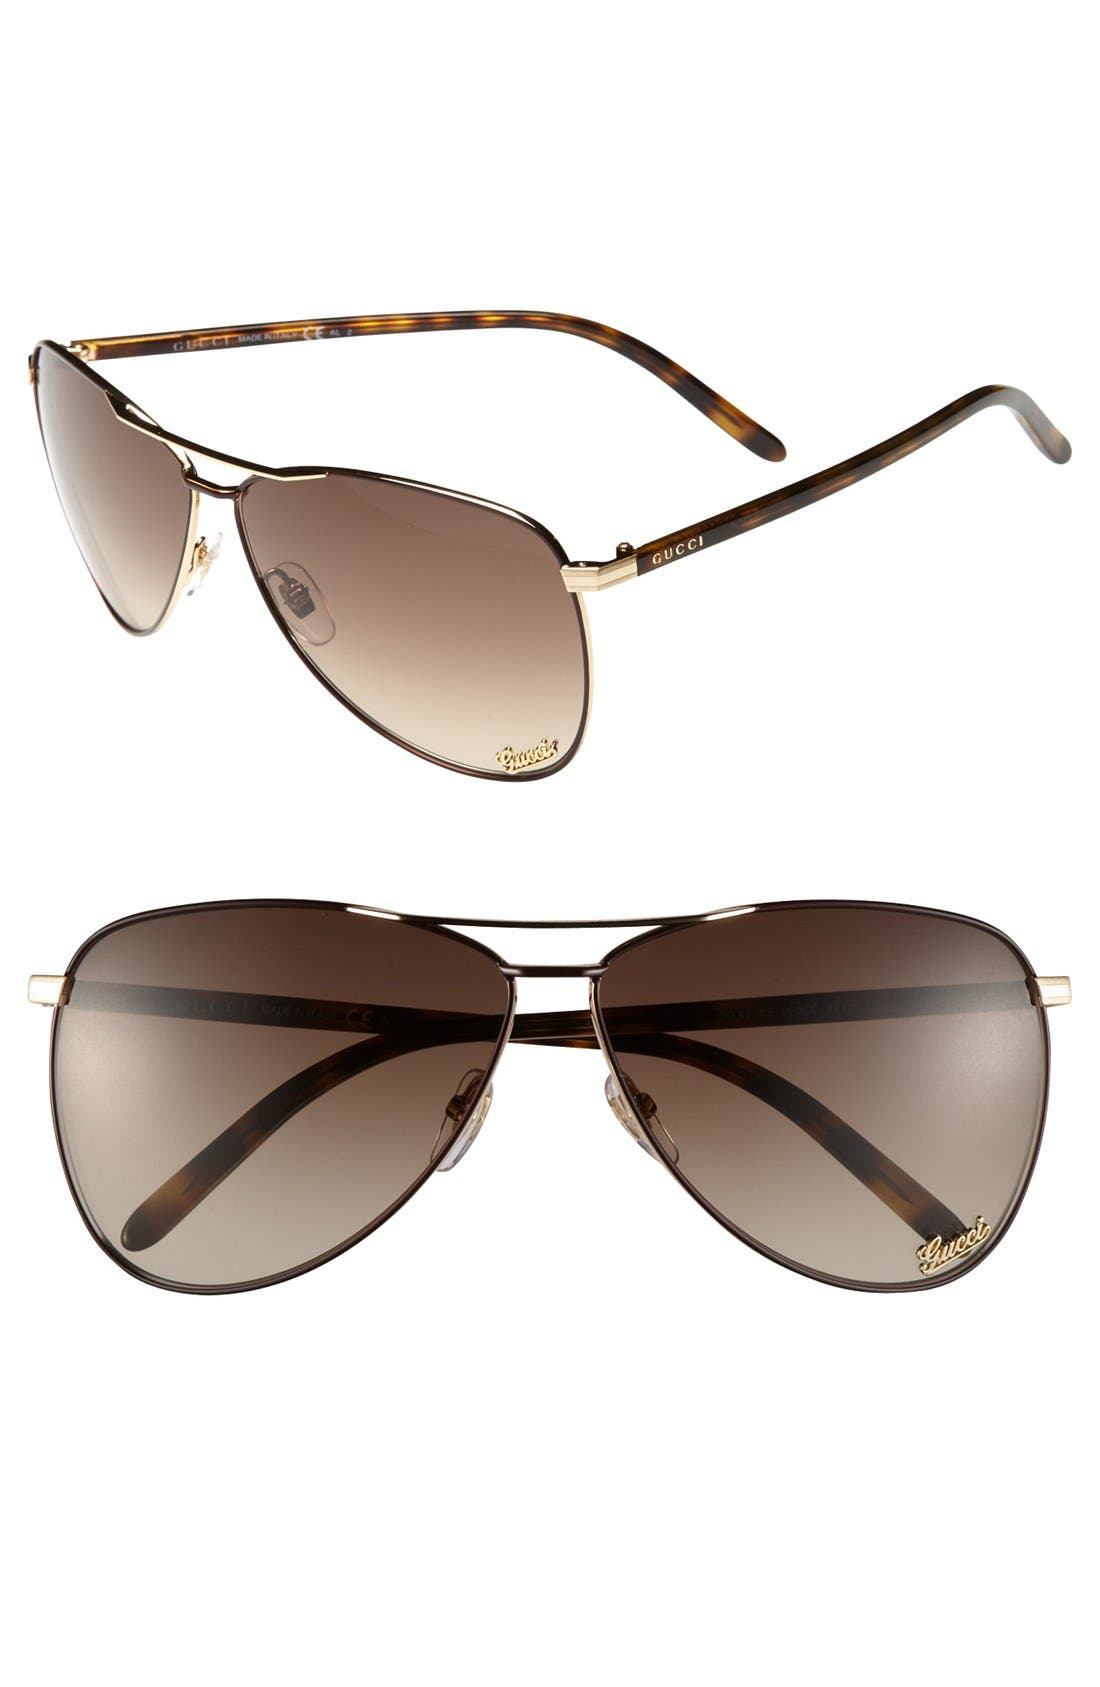 Main Image - Gucci 62mm Metal Aviator Sunglasses